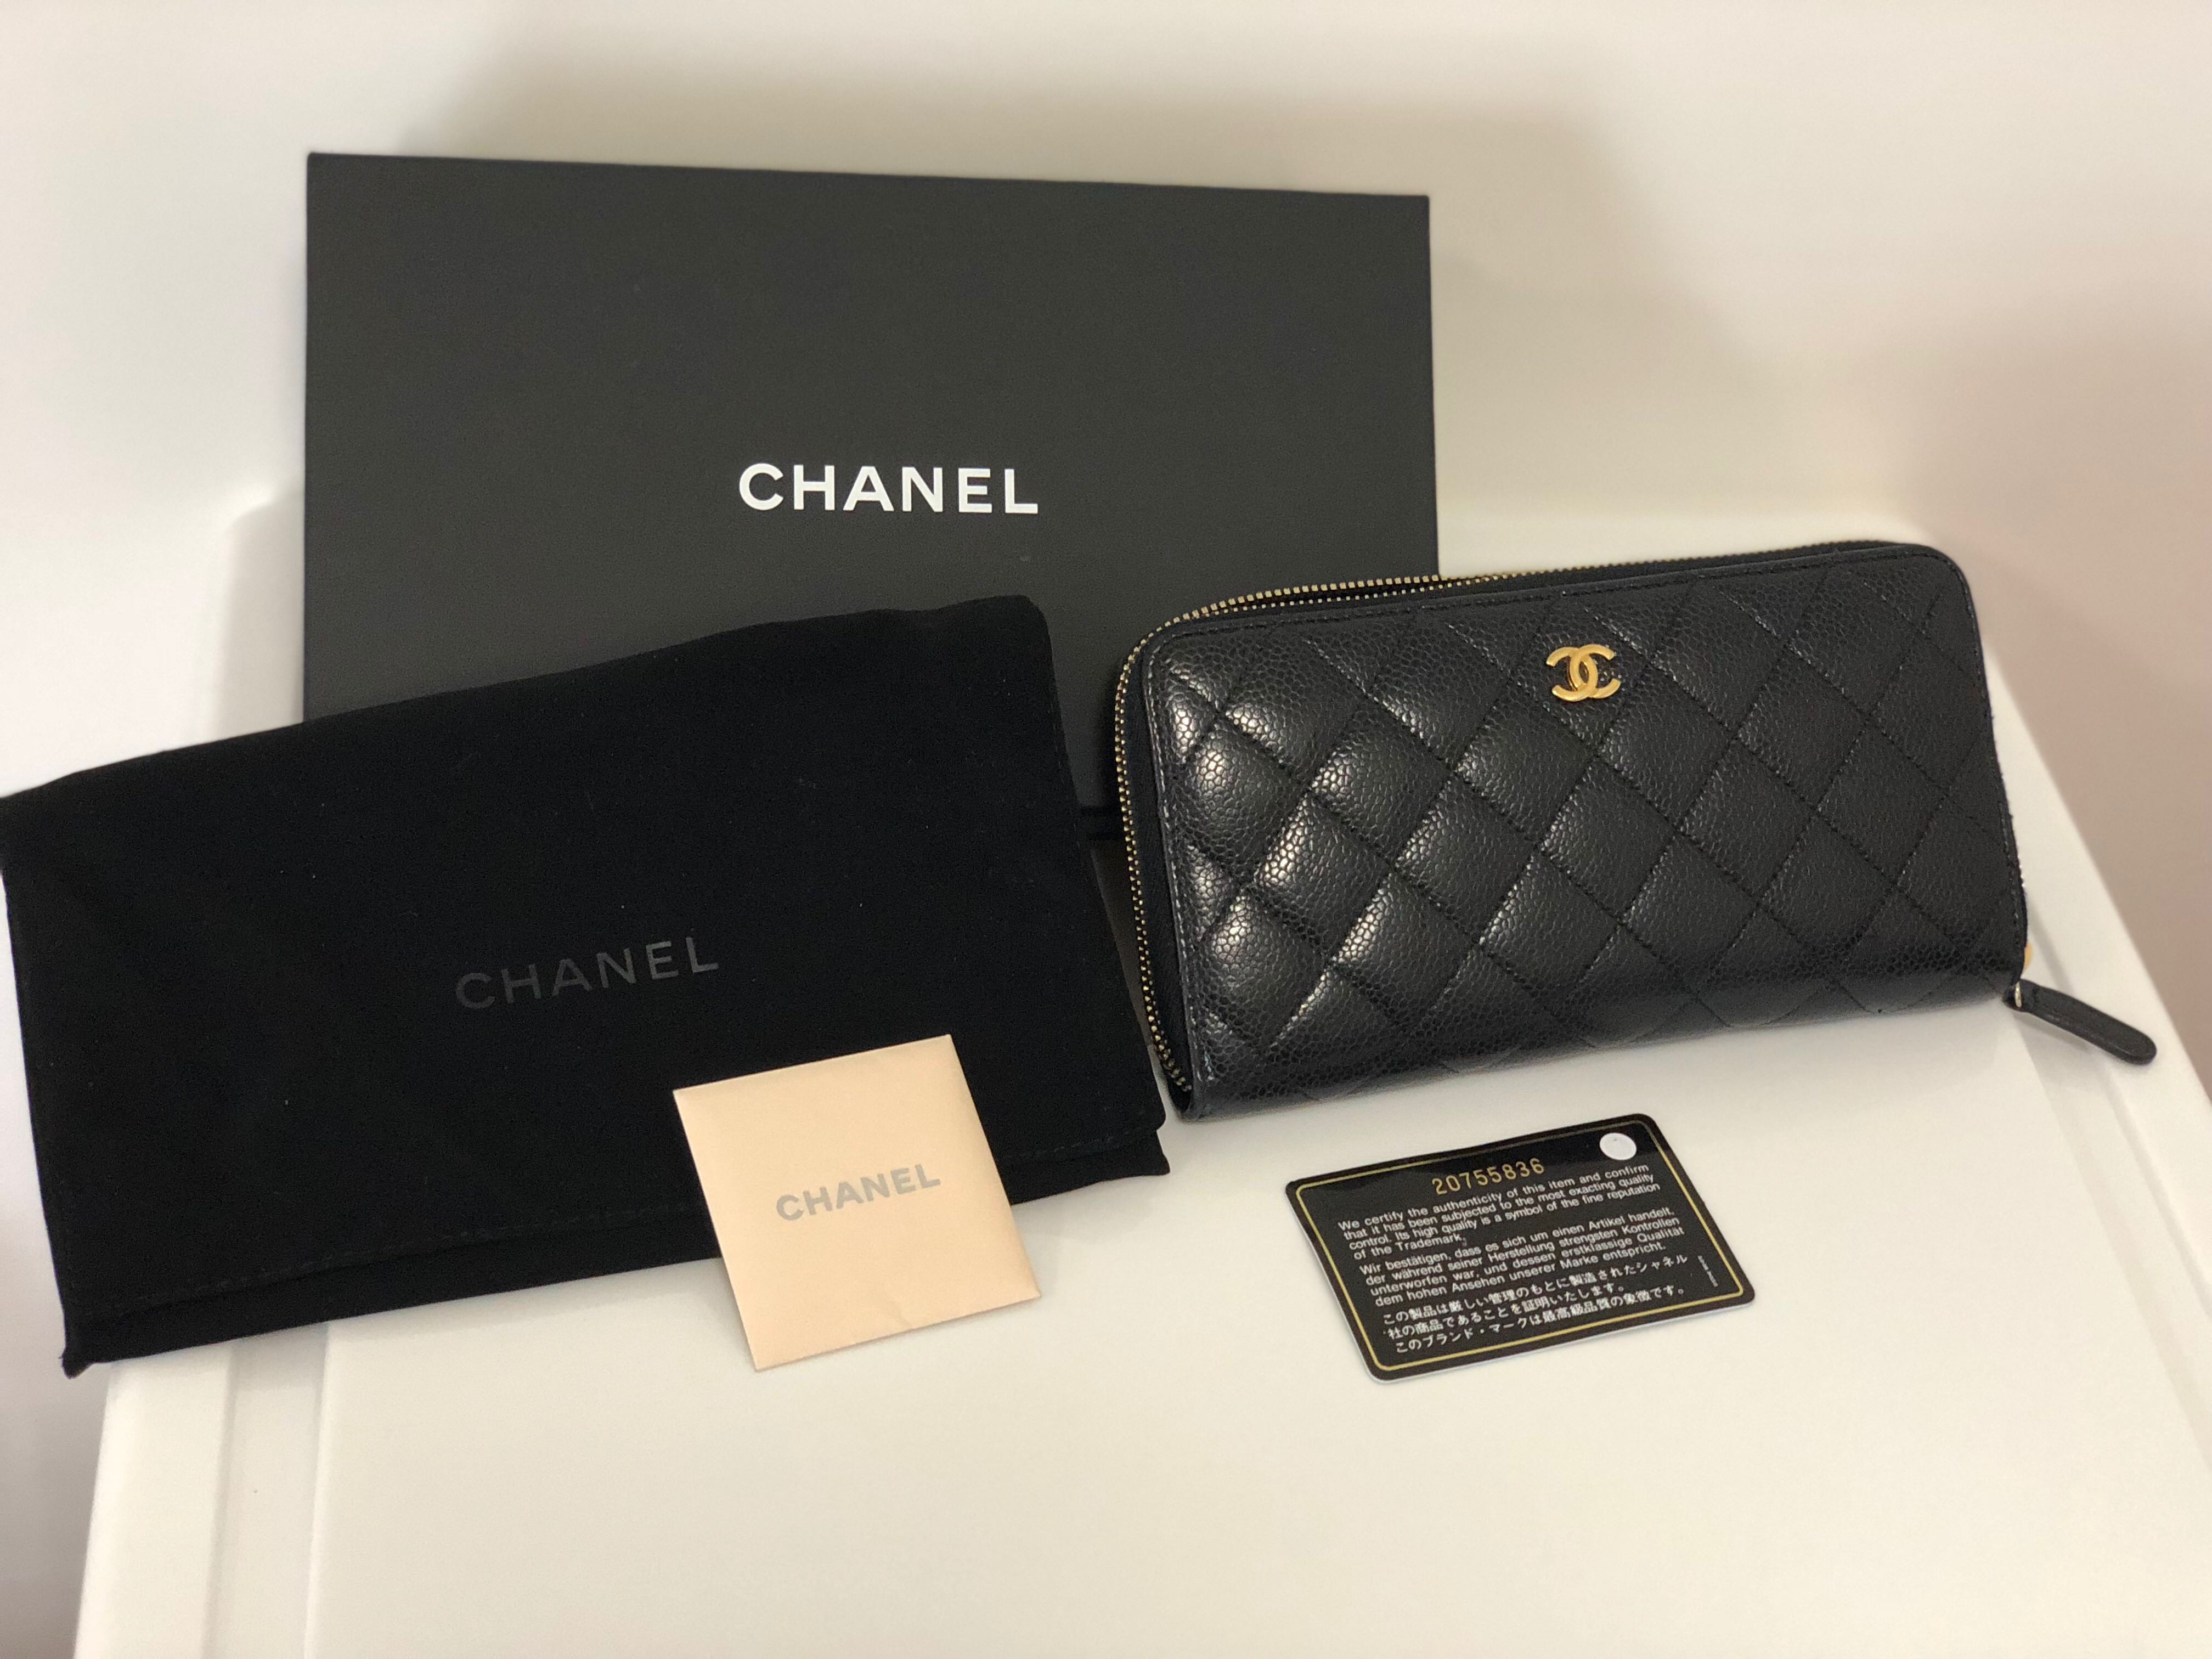 581ab2ccc42f 100% Authentic CHANEL zip around wallet in black Caviar leather with Gold  hardware, Luxury, Bags & Wallets, Wallets on Carousell